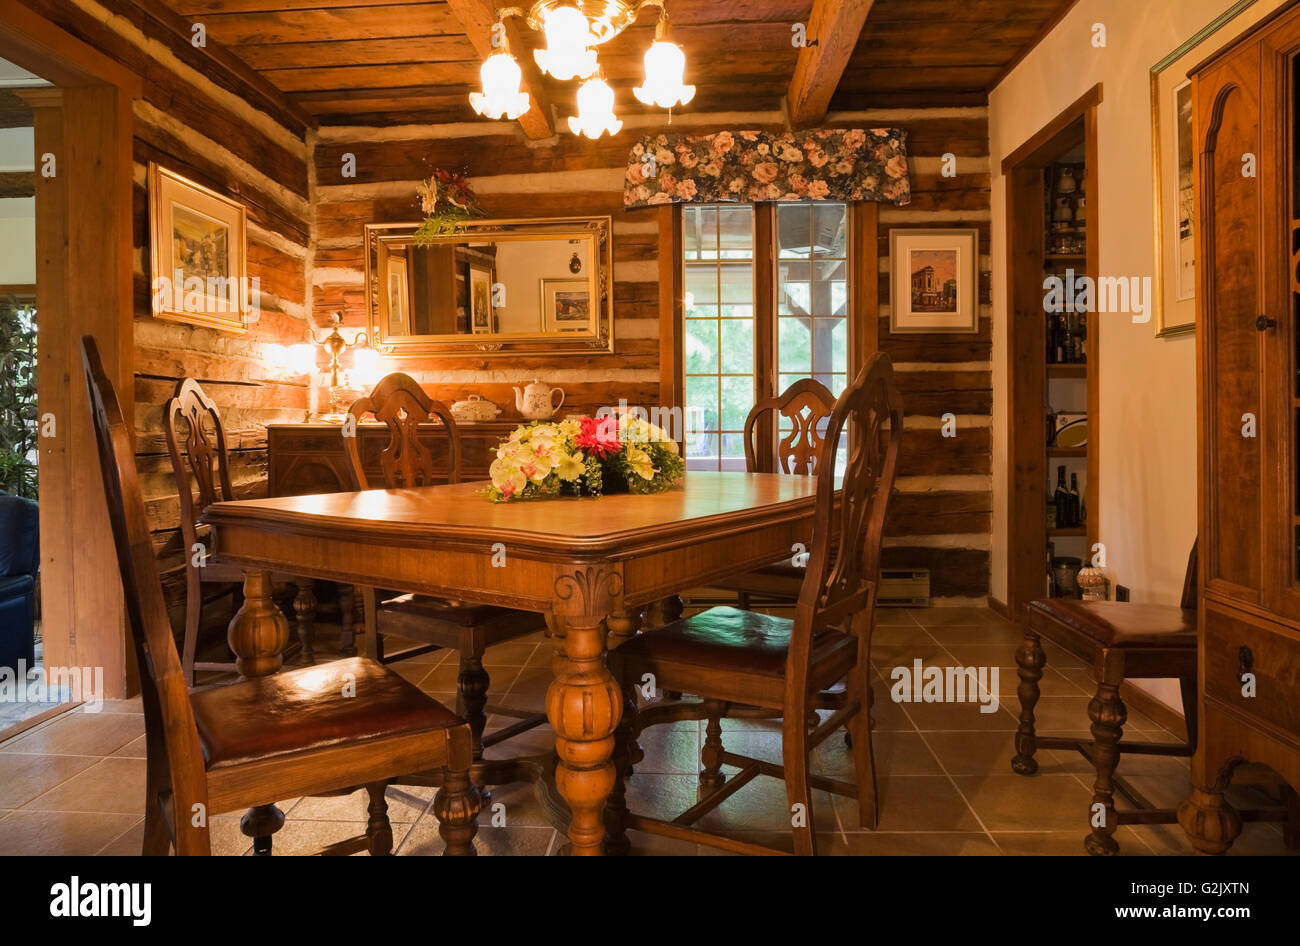 Old Wooden Dining Table Chairs In Dining Room Inside A 1976 Reconstructed  Cottage Style Log Home Quebec Canada This Image